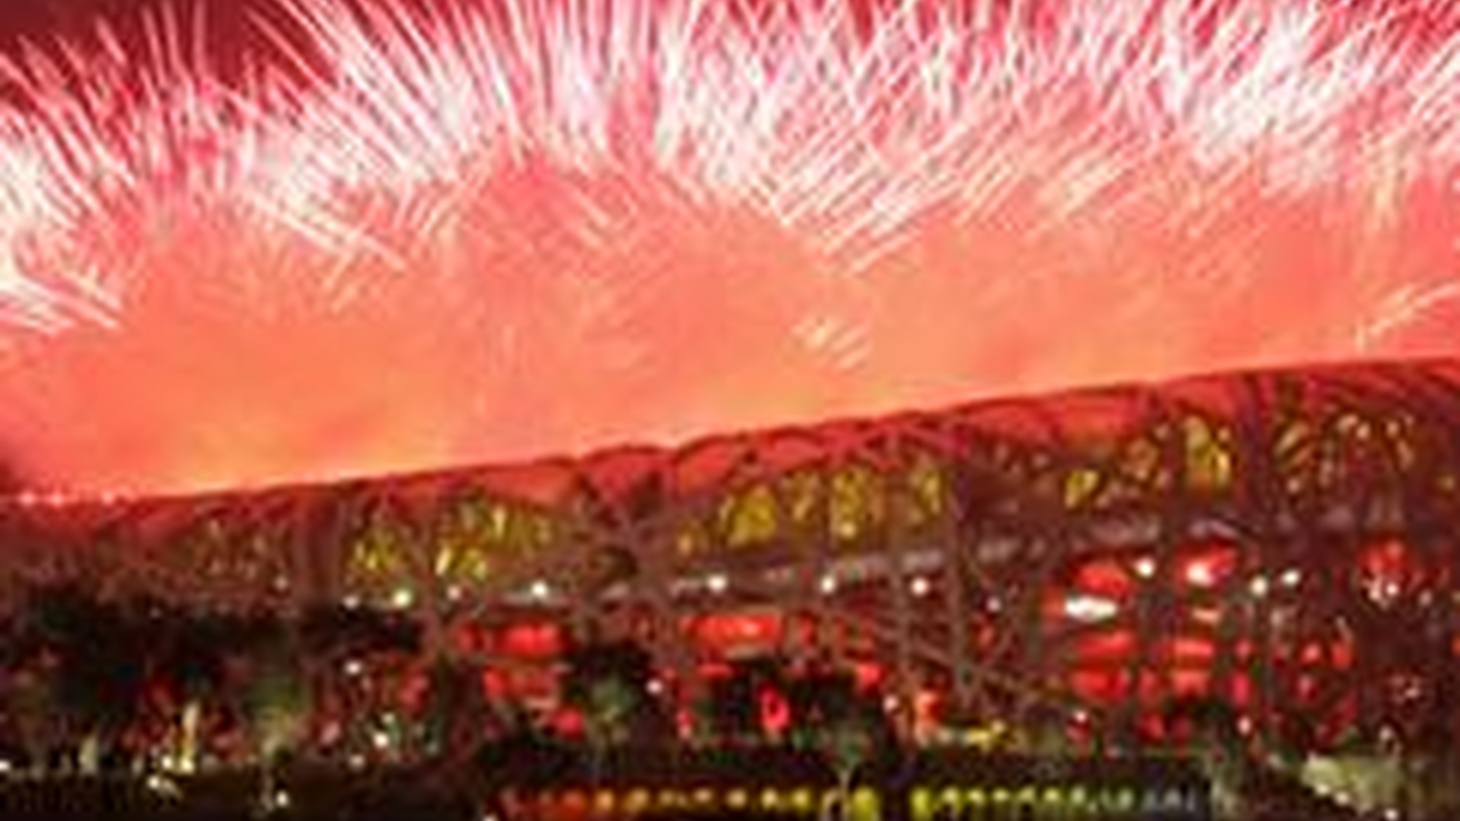 The opening ceremonies of the 29th Olympiad in Beijing, China's triumphal and spectacular statement to the rest of the world, are over. We talk to eyewitnesses and a TV producer of former Olympic events. Also, Russia sends planes, tanks and troops to Georgia, and the first war crimes sentence amounts to time served.